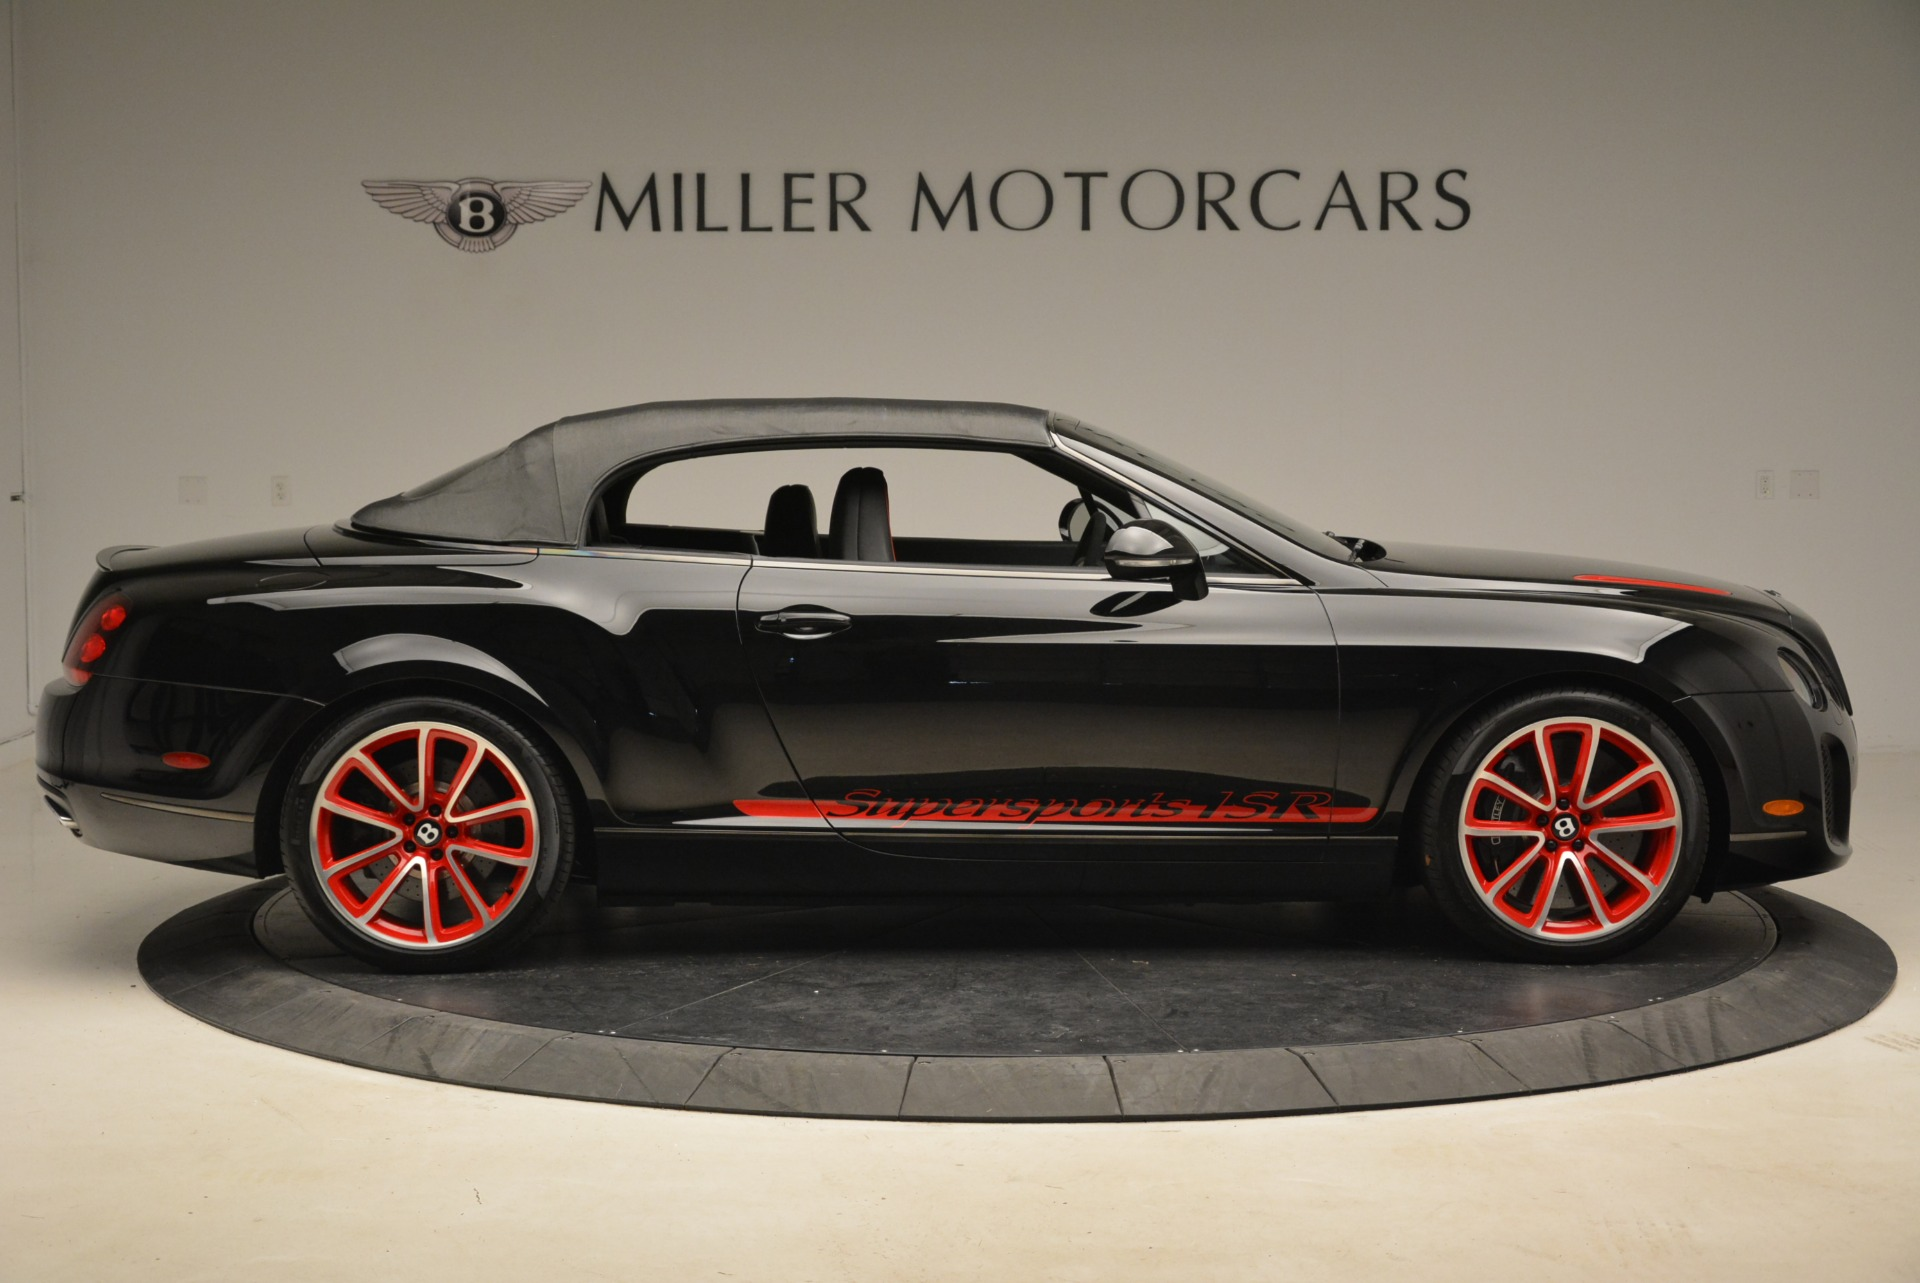 Used 2013 Bentley Continental GT Supersports Convertible ISR For Sale In Westport, CT 2151_p22